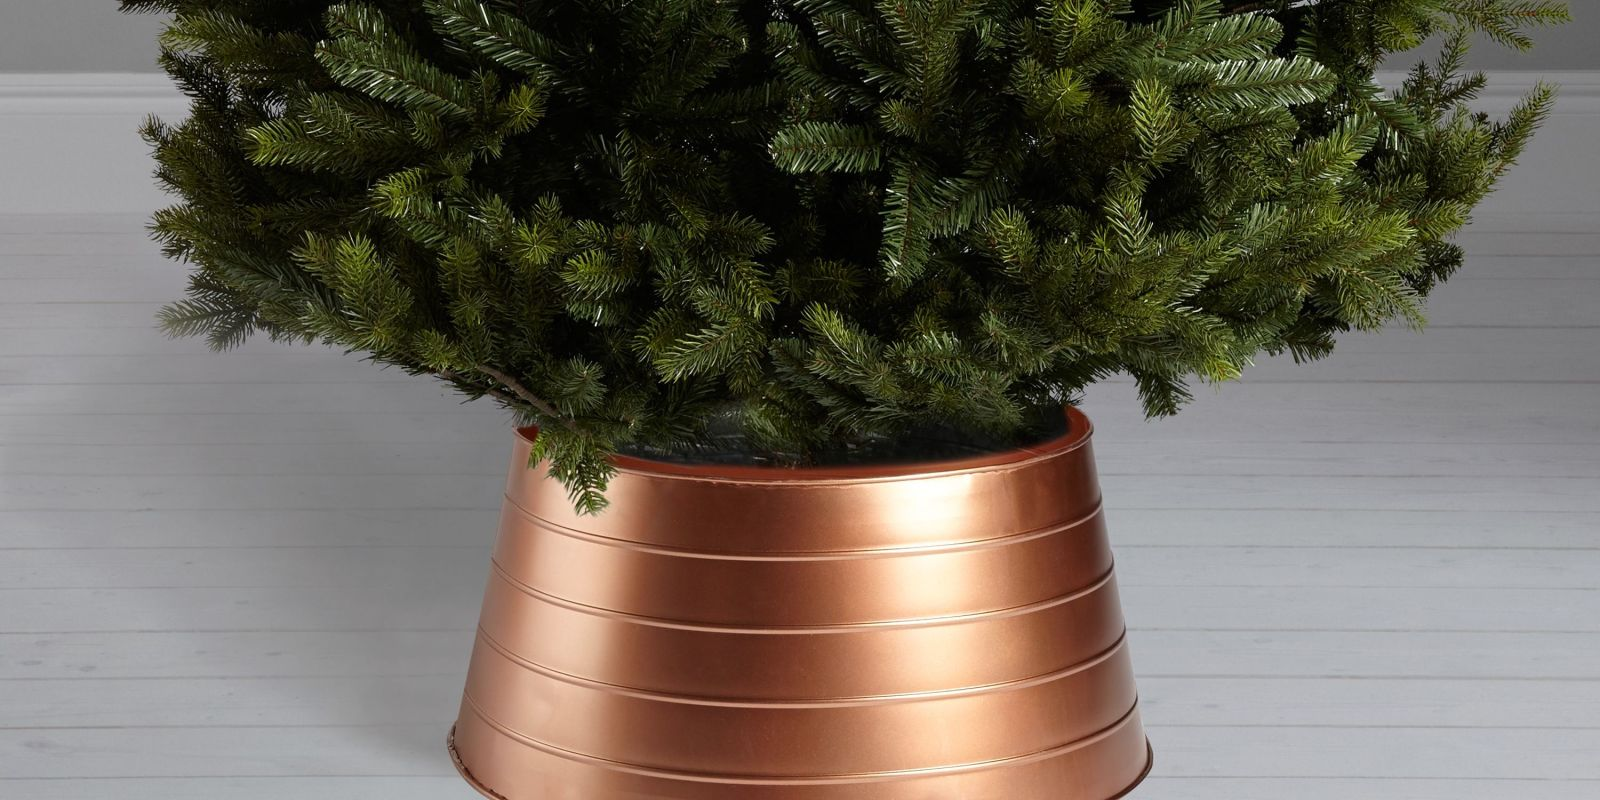 Christmas Tree Skirts Are Now More Popular Than Tree ...